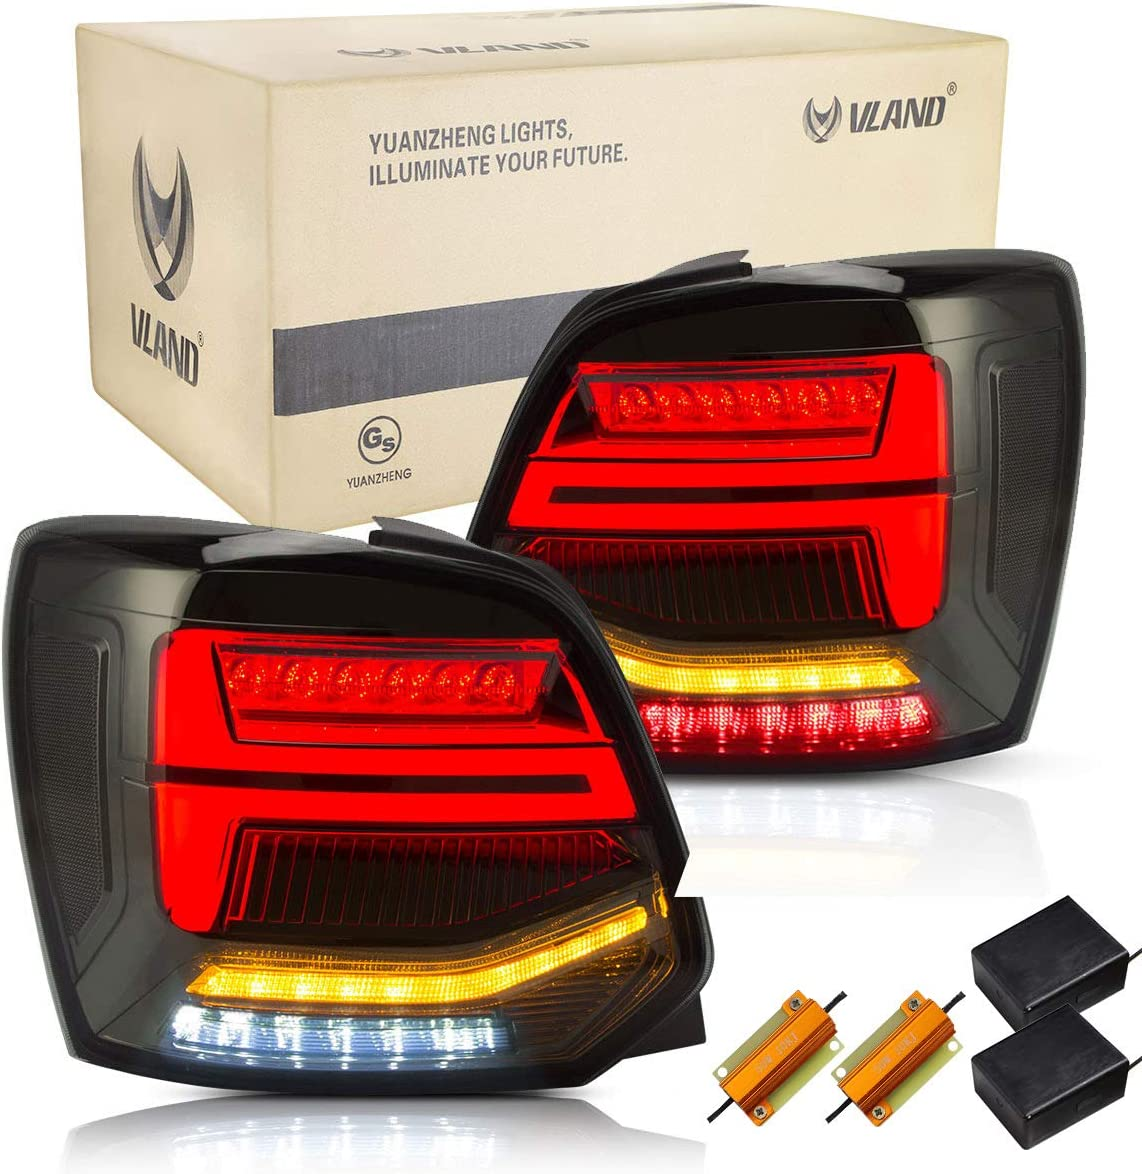 VLAND LED Rear Light for Polo MK5 6R 6C TSI 2009 2010 2011 2012 2013 2014 2015 2016 2017 2018 Tail Lights Lamp, with Dynamic Indicator,with Full LED Tech,Smoked,RHD(Driver is on the Right)